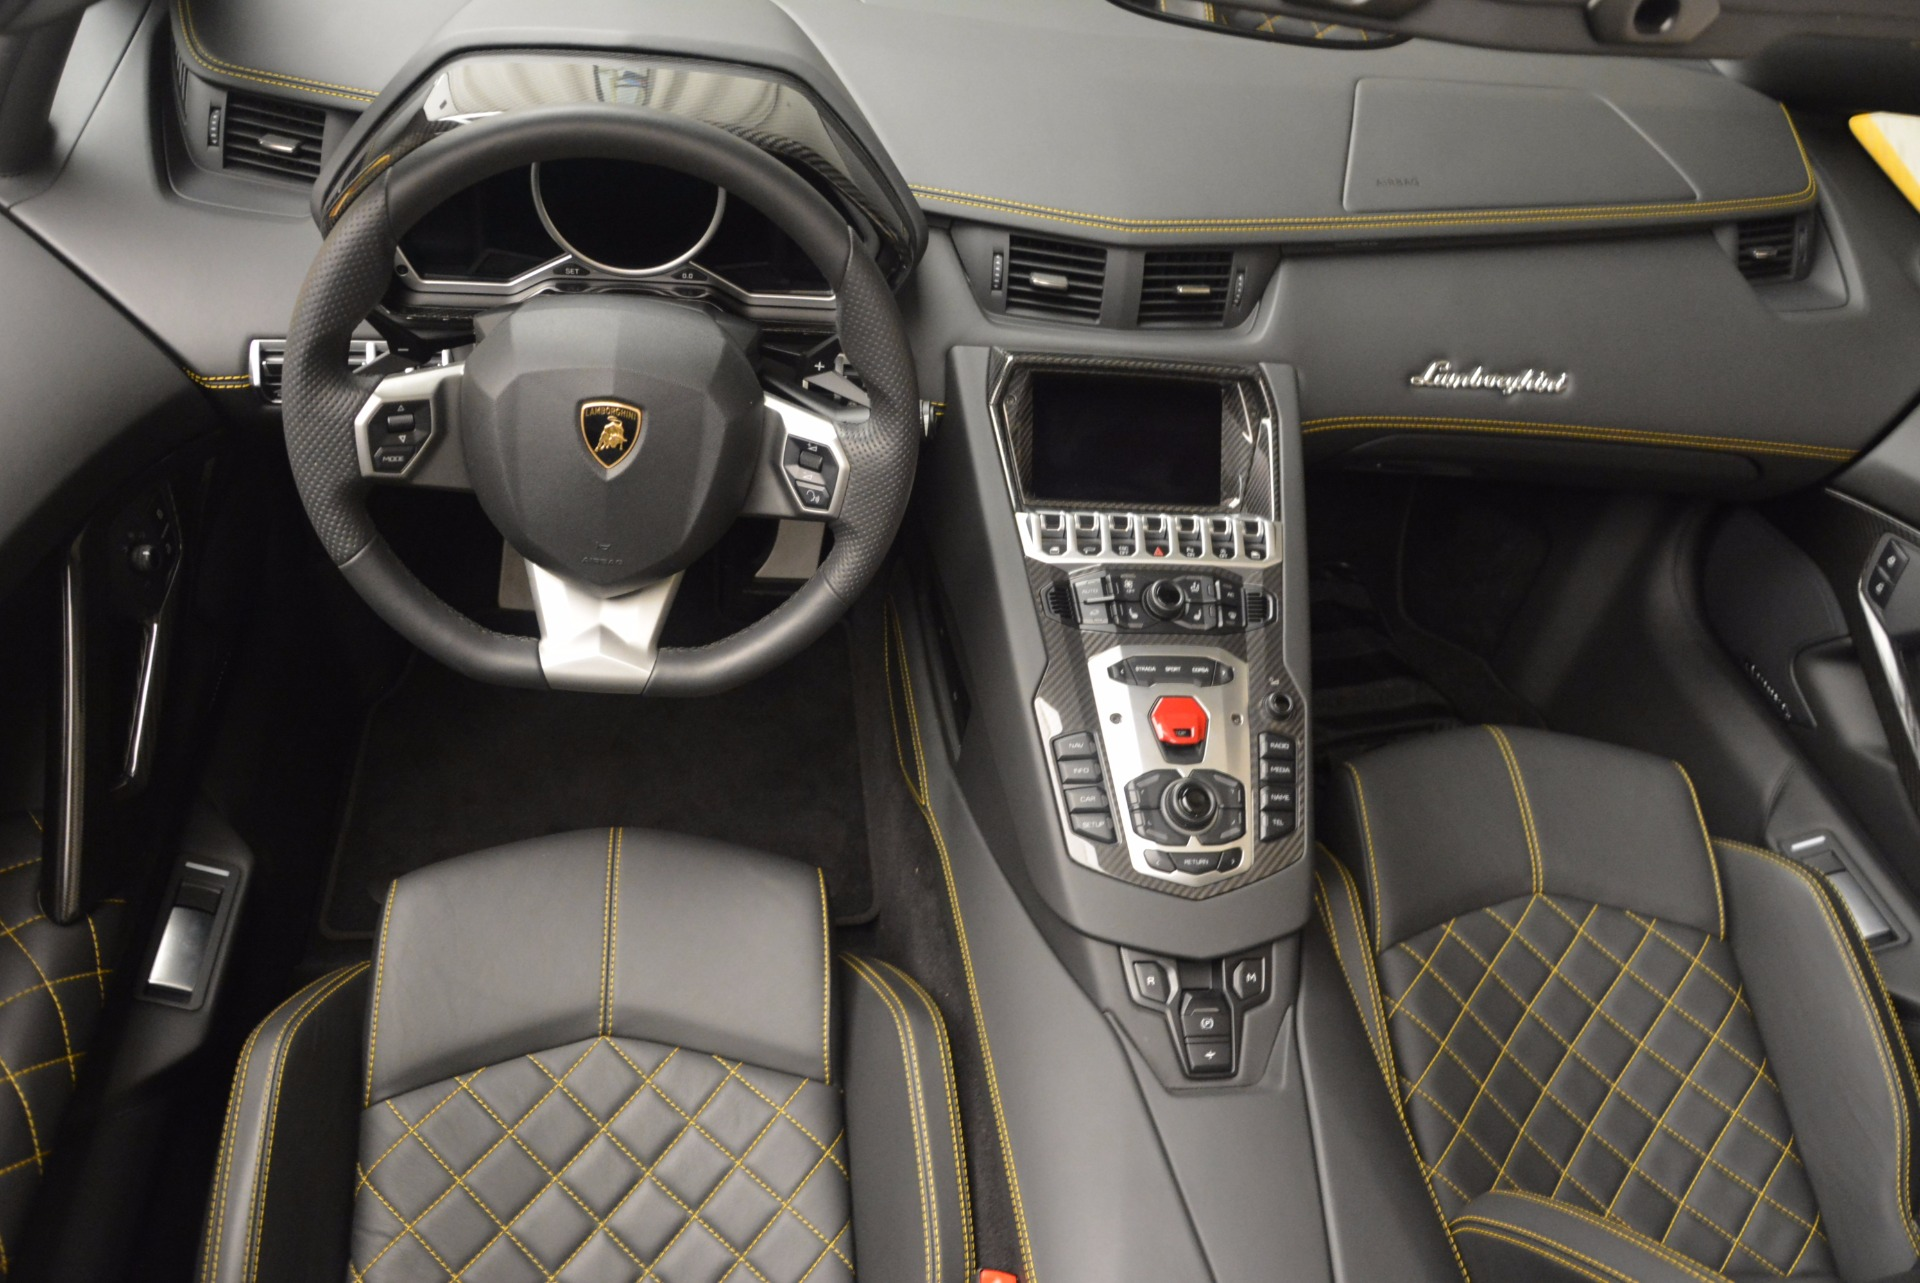 Used 2015 Lamborghini Aventador LP 700-4 Roadster For Sale In Westport, CT 1774_p16